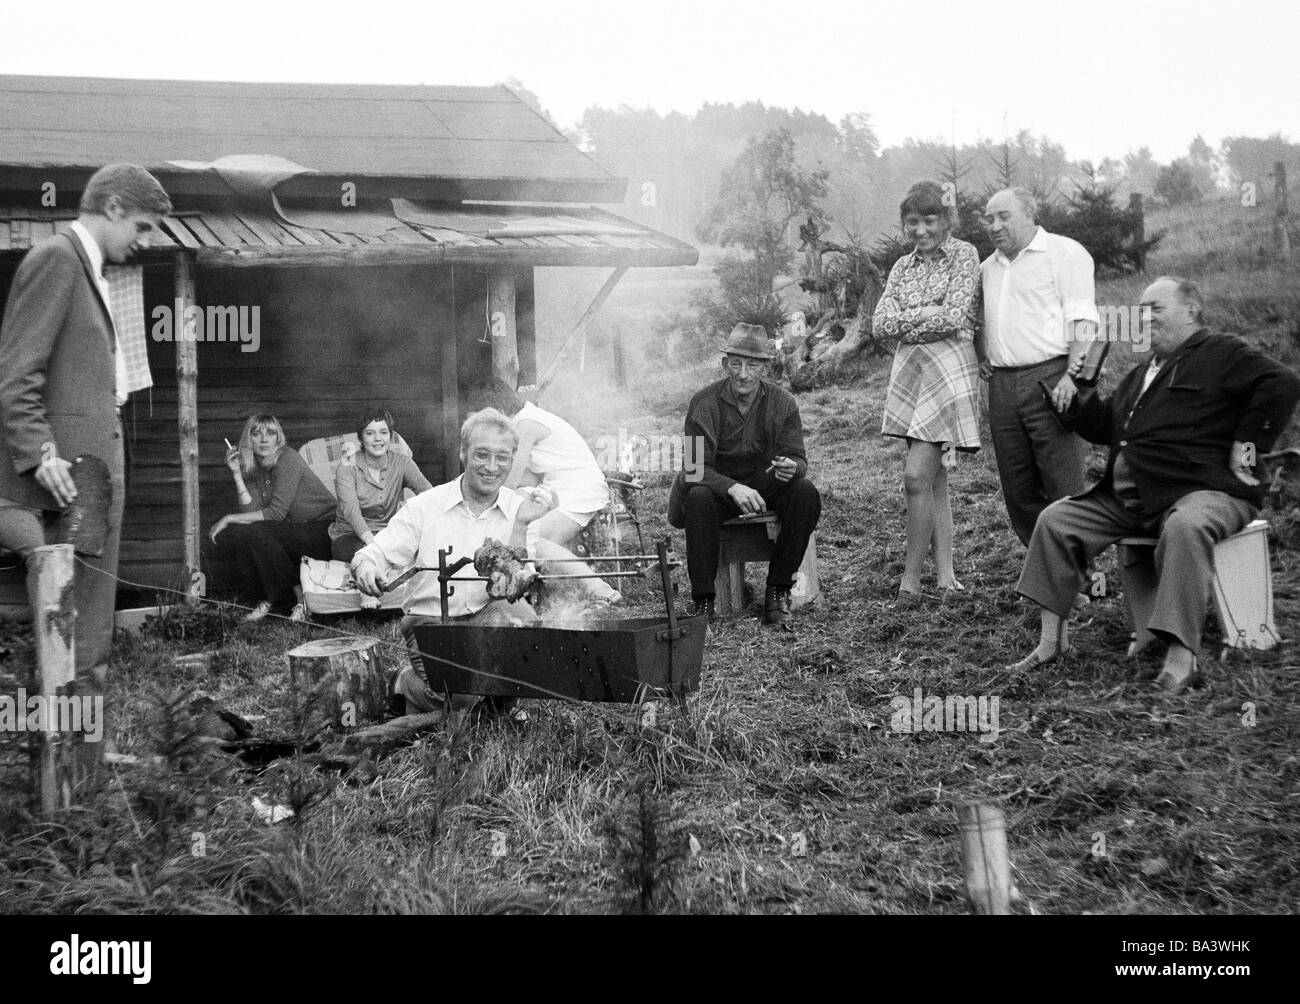 Seventies, black and white photo, people, freetime, barbecue, young man turns a roast on the charcoal grill, young - Stock Image